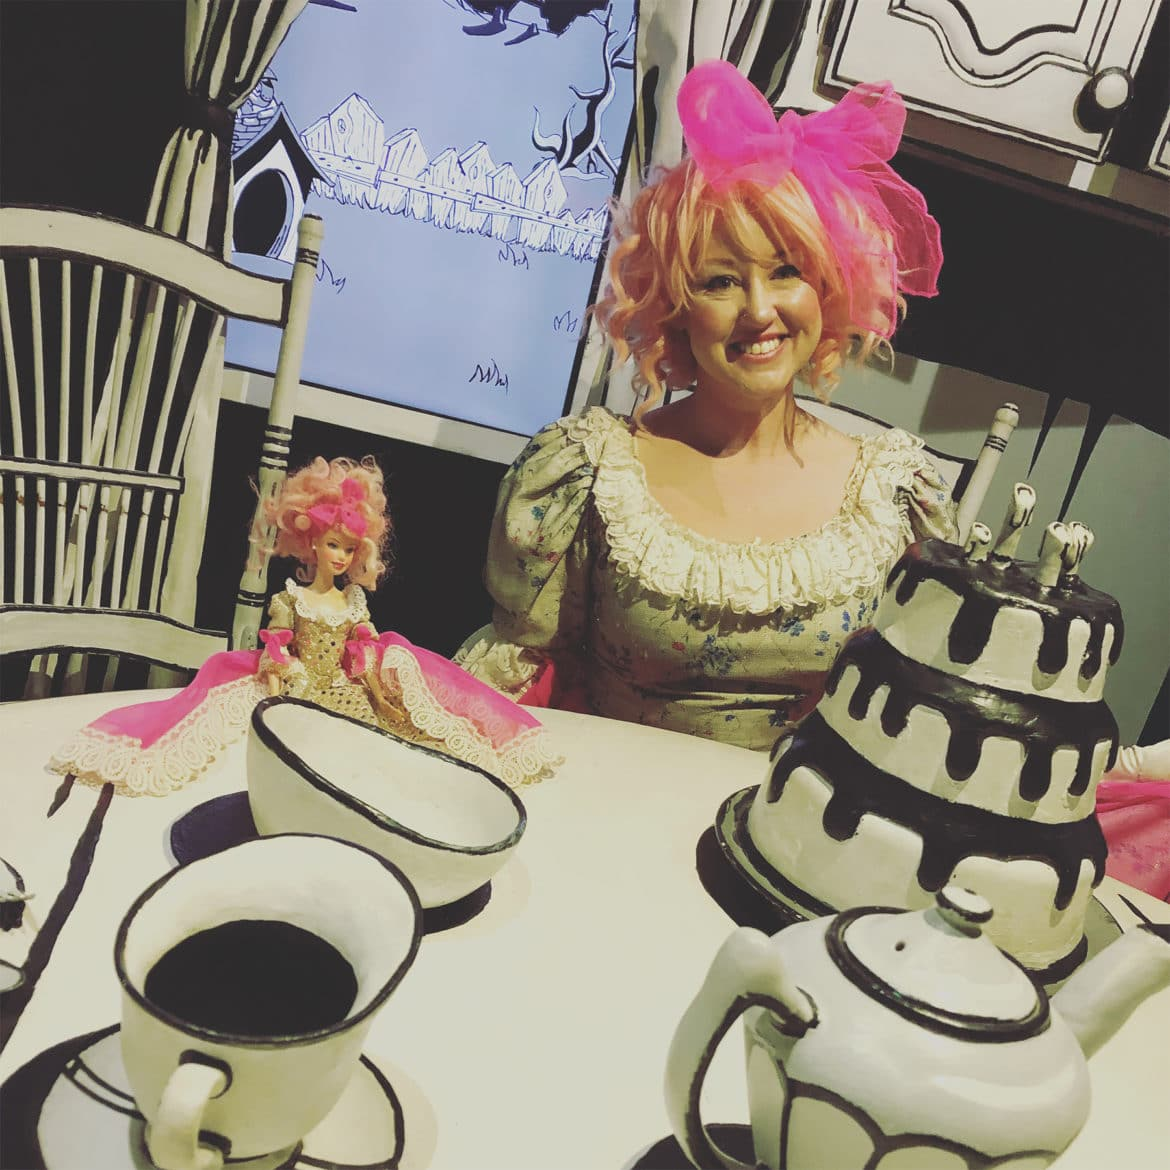 person with pink wig sitting at black and white table